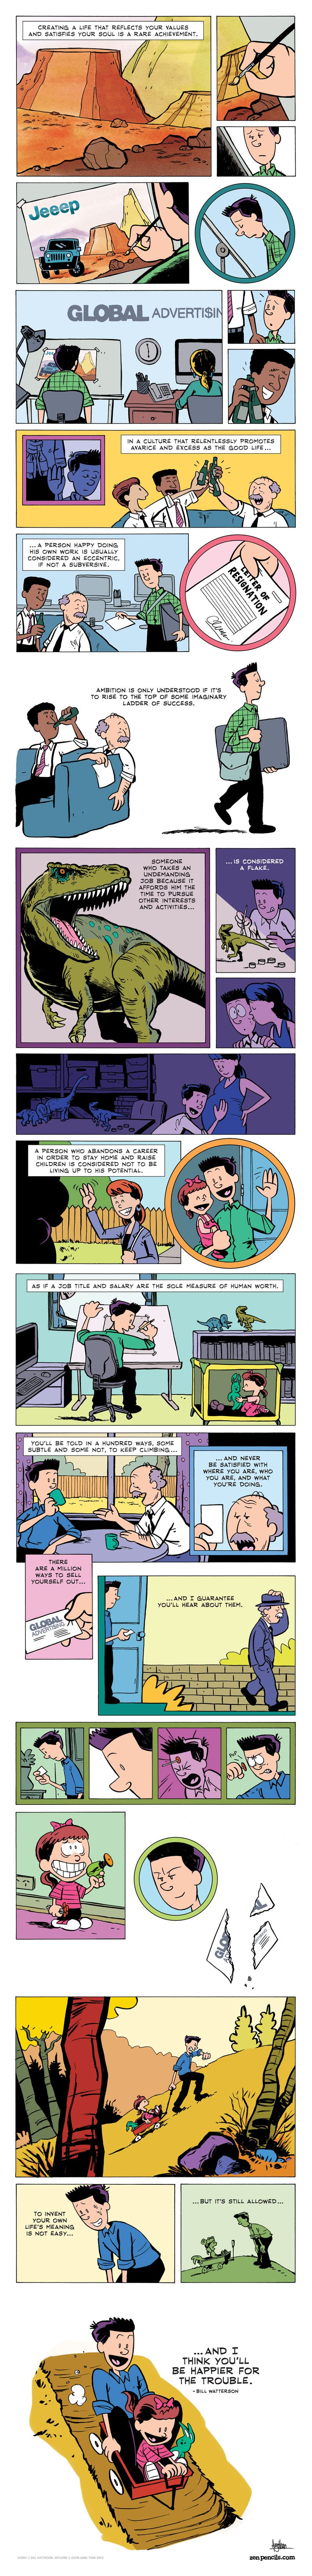 Inspirational Bill Watterson Speech Turned Into Watterson-Style Comic